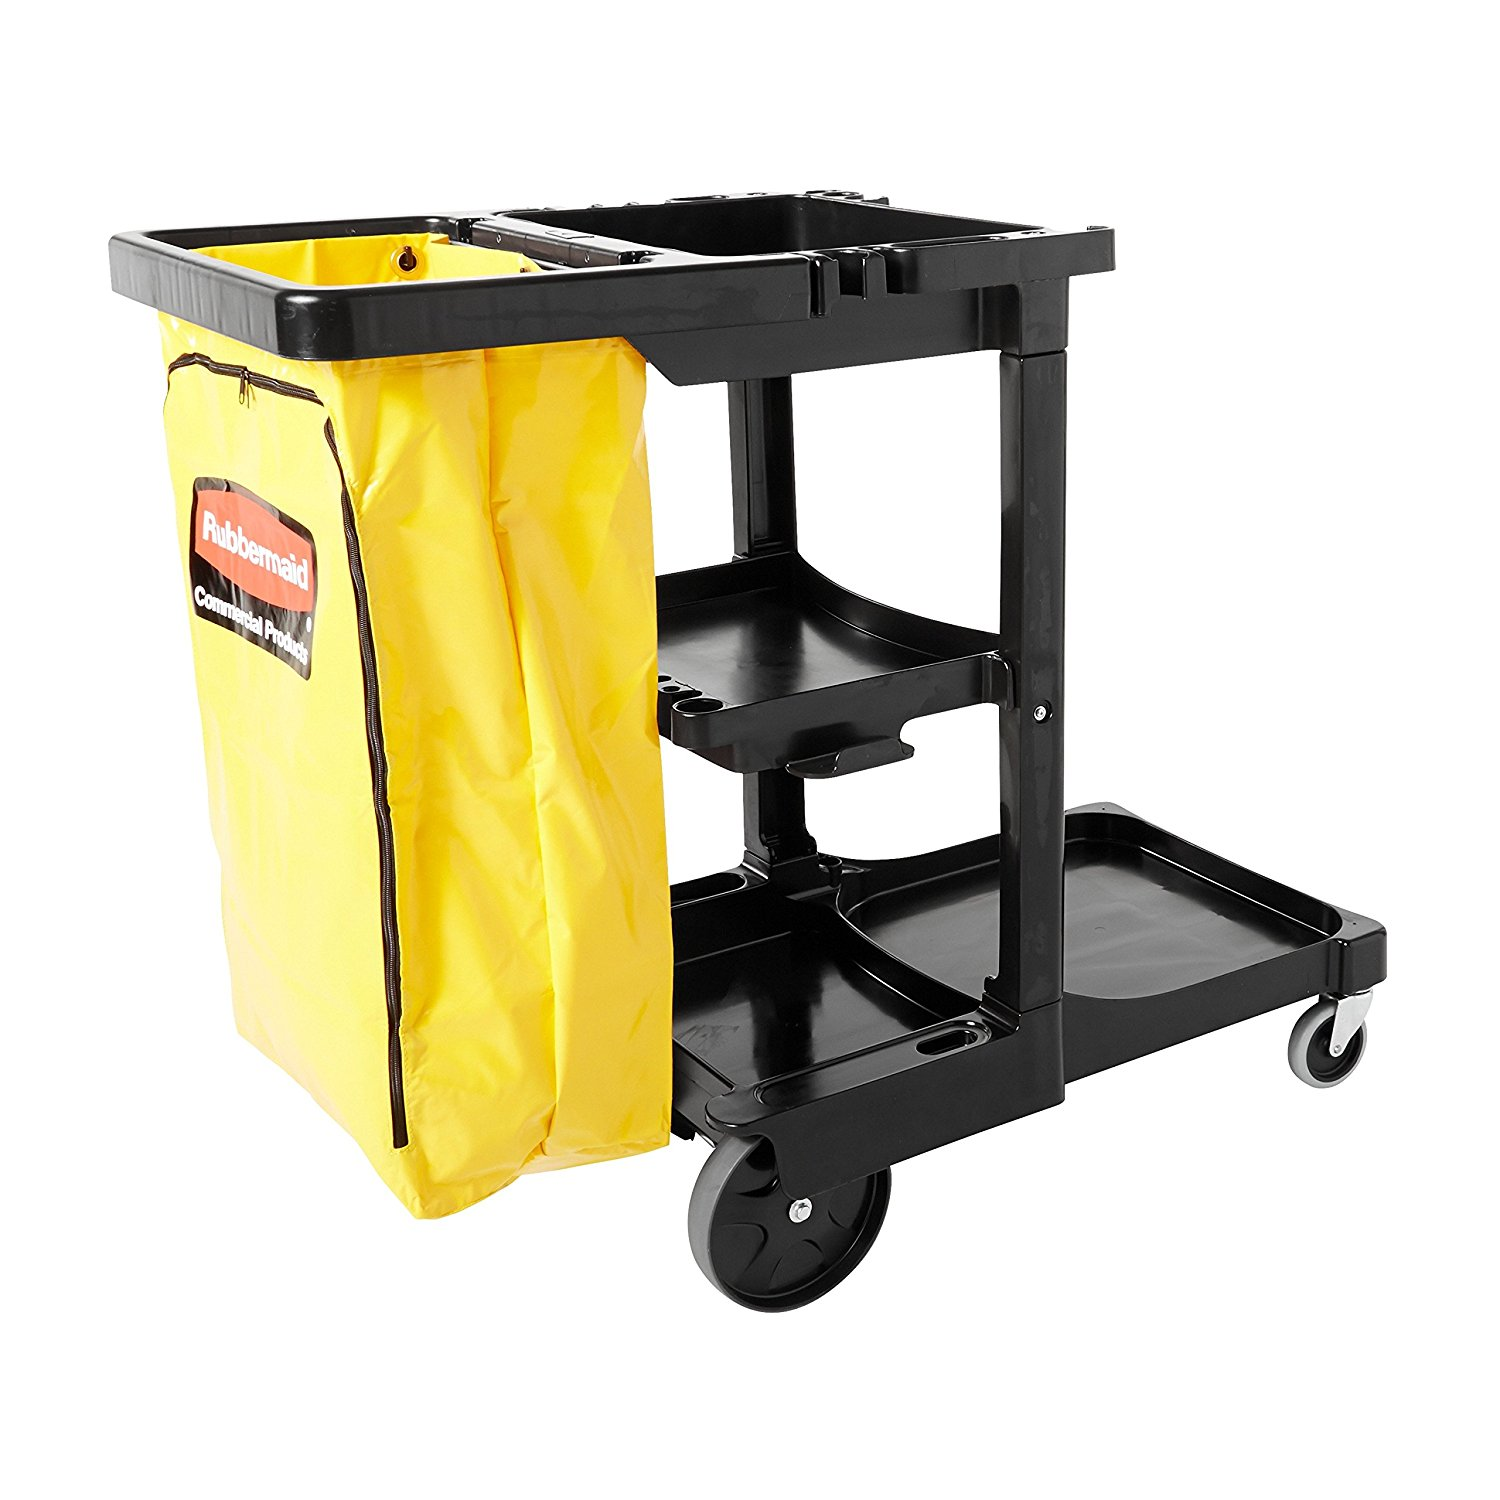 Janitor Cart - Black Rubbermaid